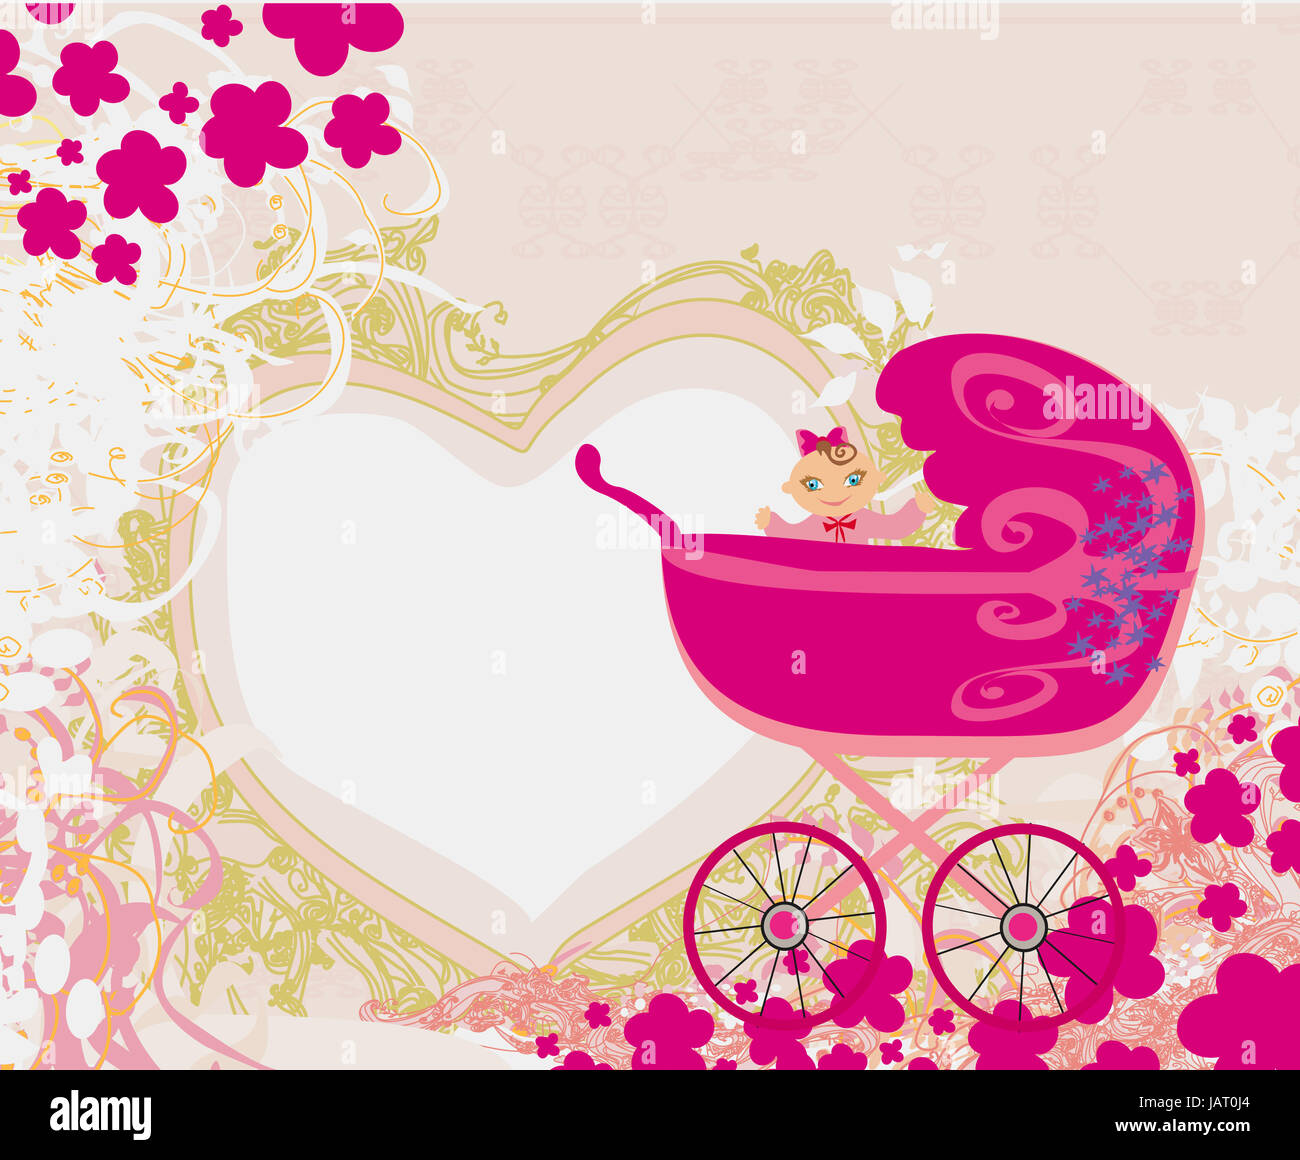 baby girl announcement card stock photo 144356860 alamy